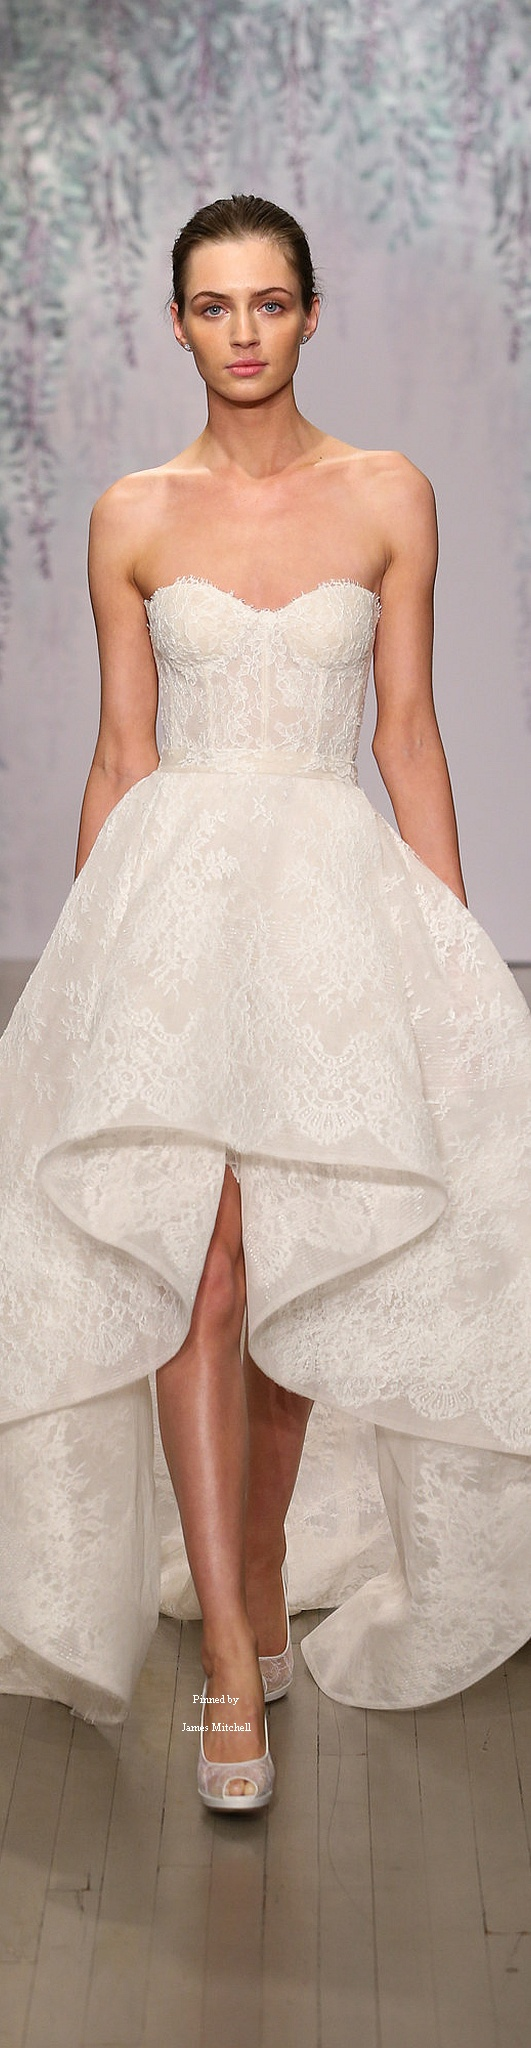 Monique lhuillier bridal collection fall bridal gowns